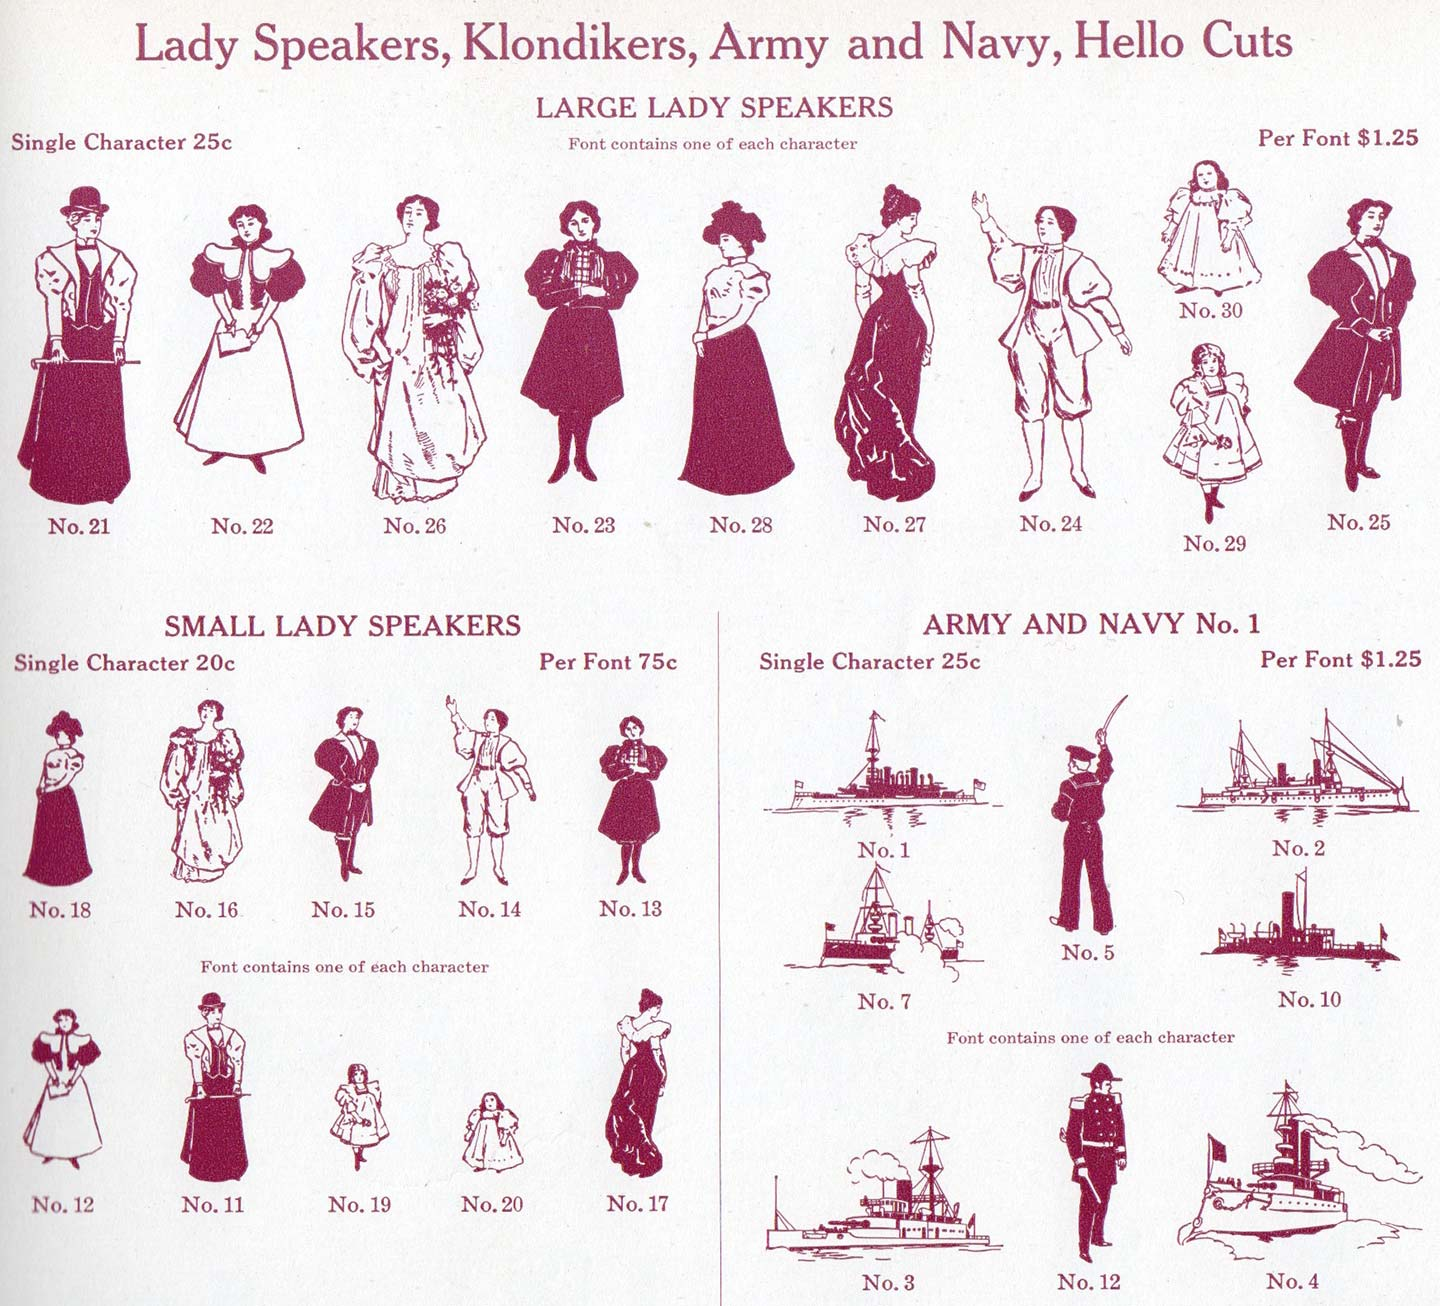 Turns out, it's never been that hard to find Lady Speakers after all